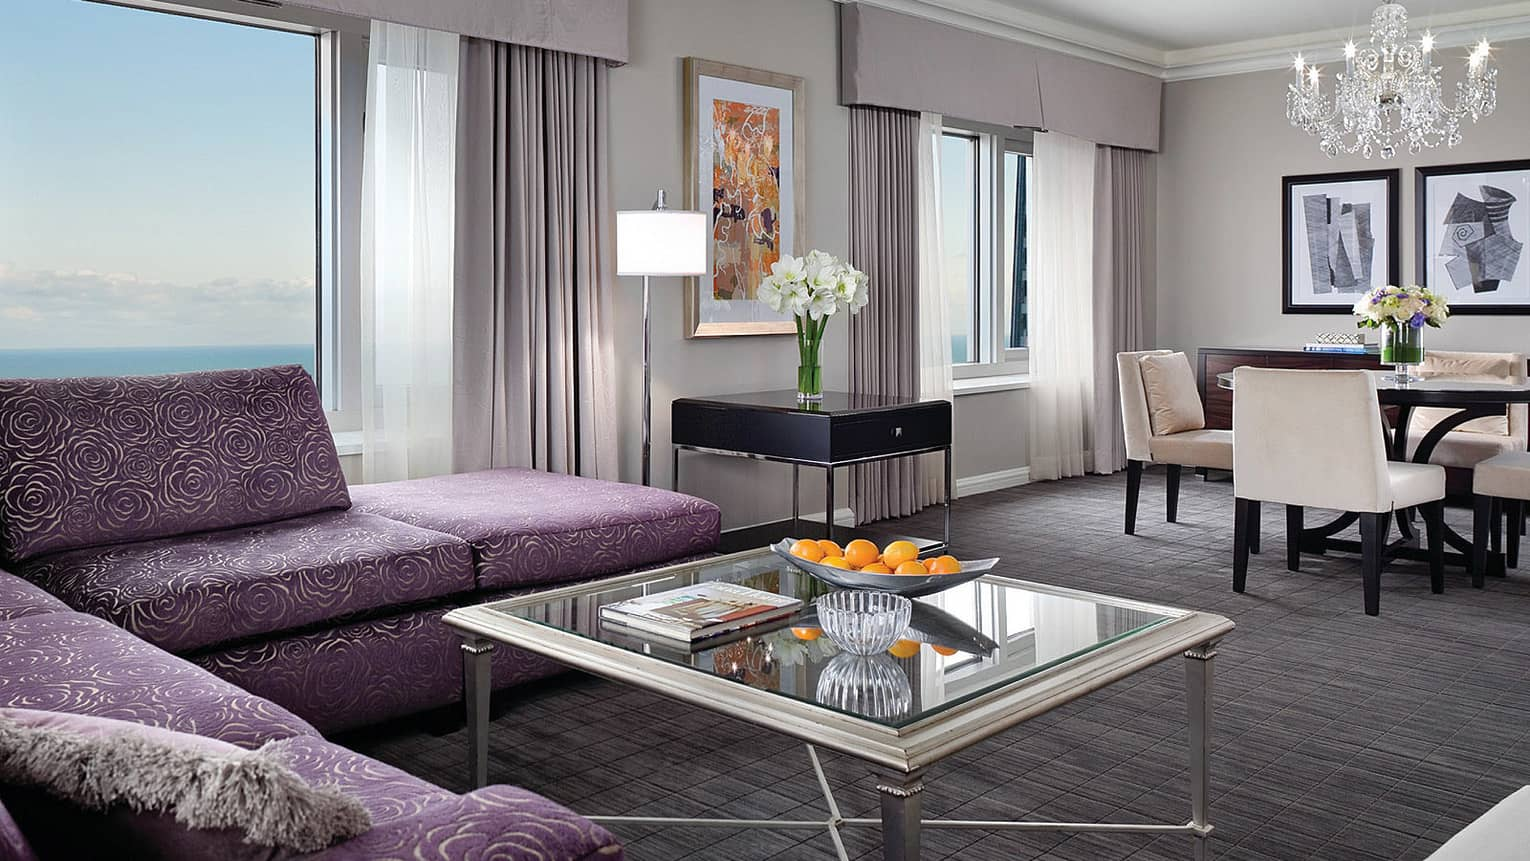 Hotel room with L-shaped velvet purple sofa with rose pattern, coffee table with bowl of fresh oranges, dining table, crystal chandelier